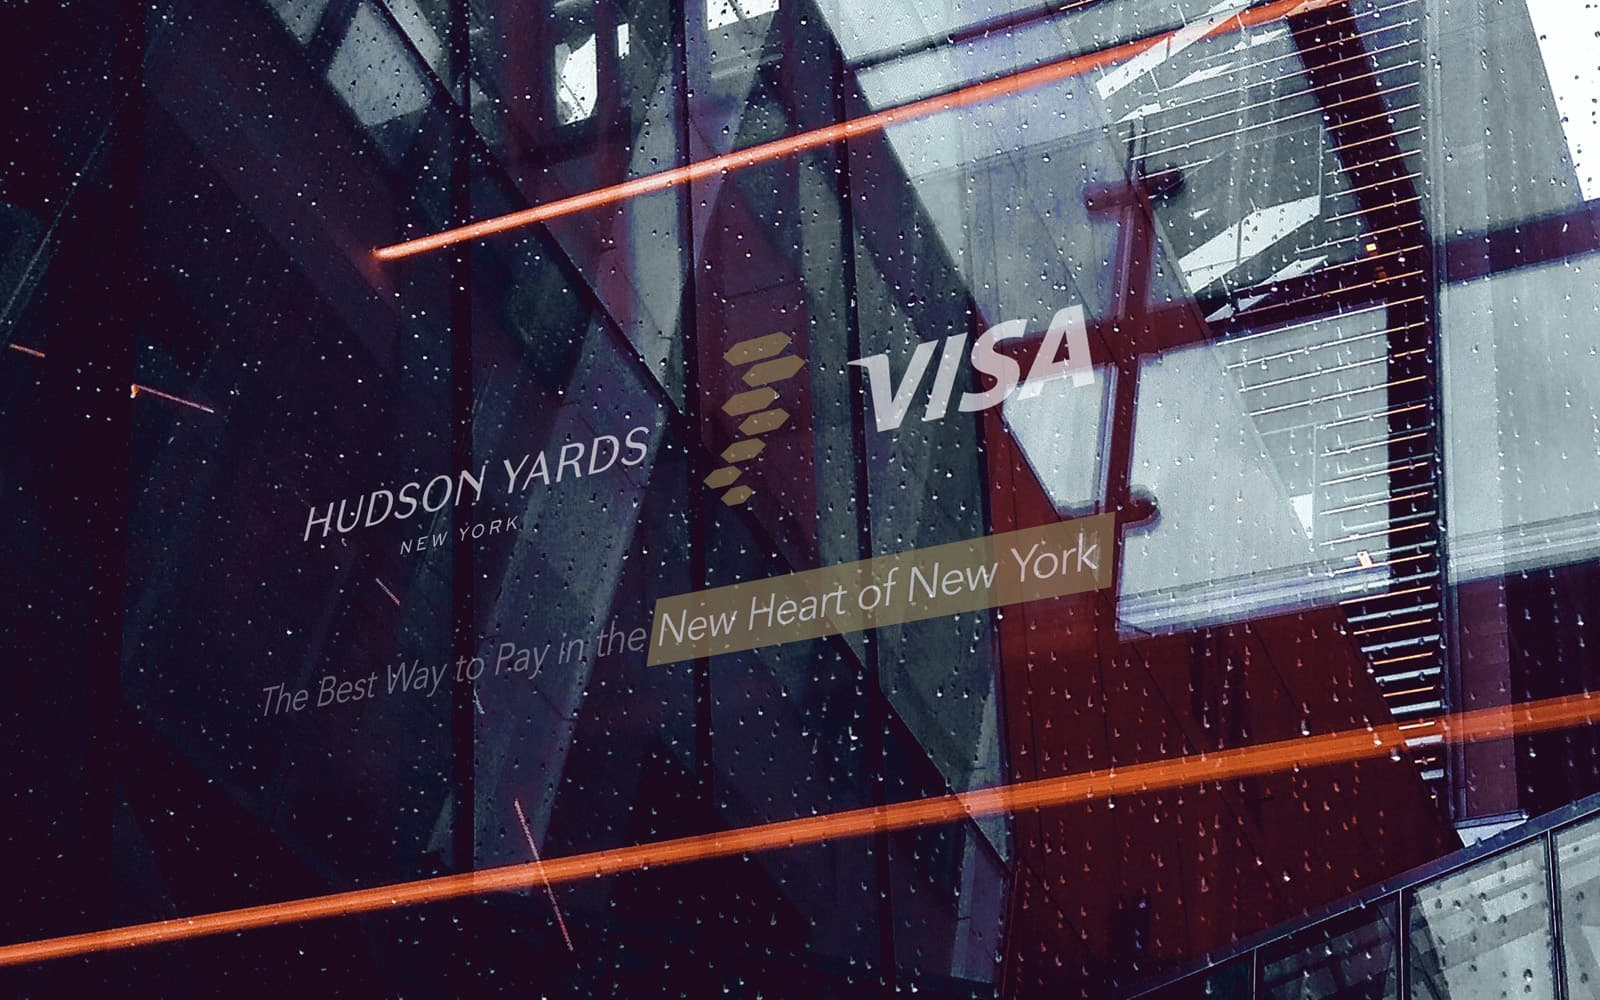 Visa Hudson Yards New York - The best way to pay in the new heart of New York